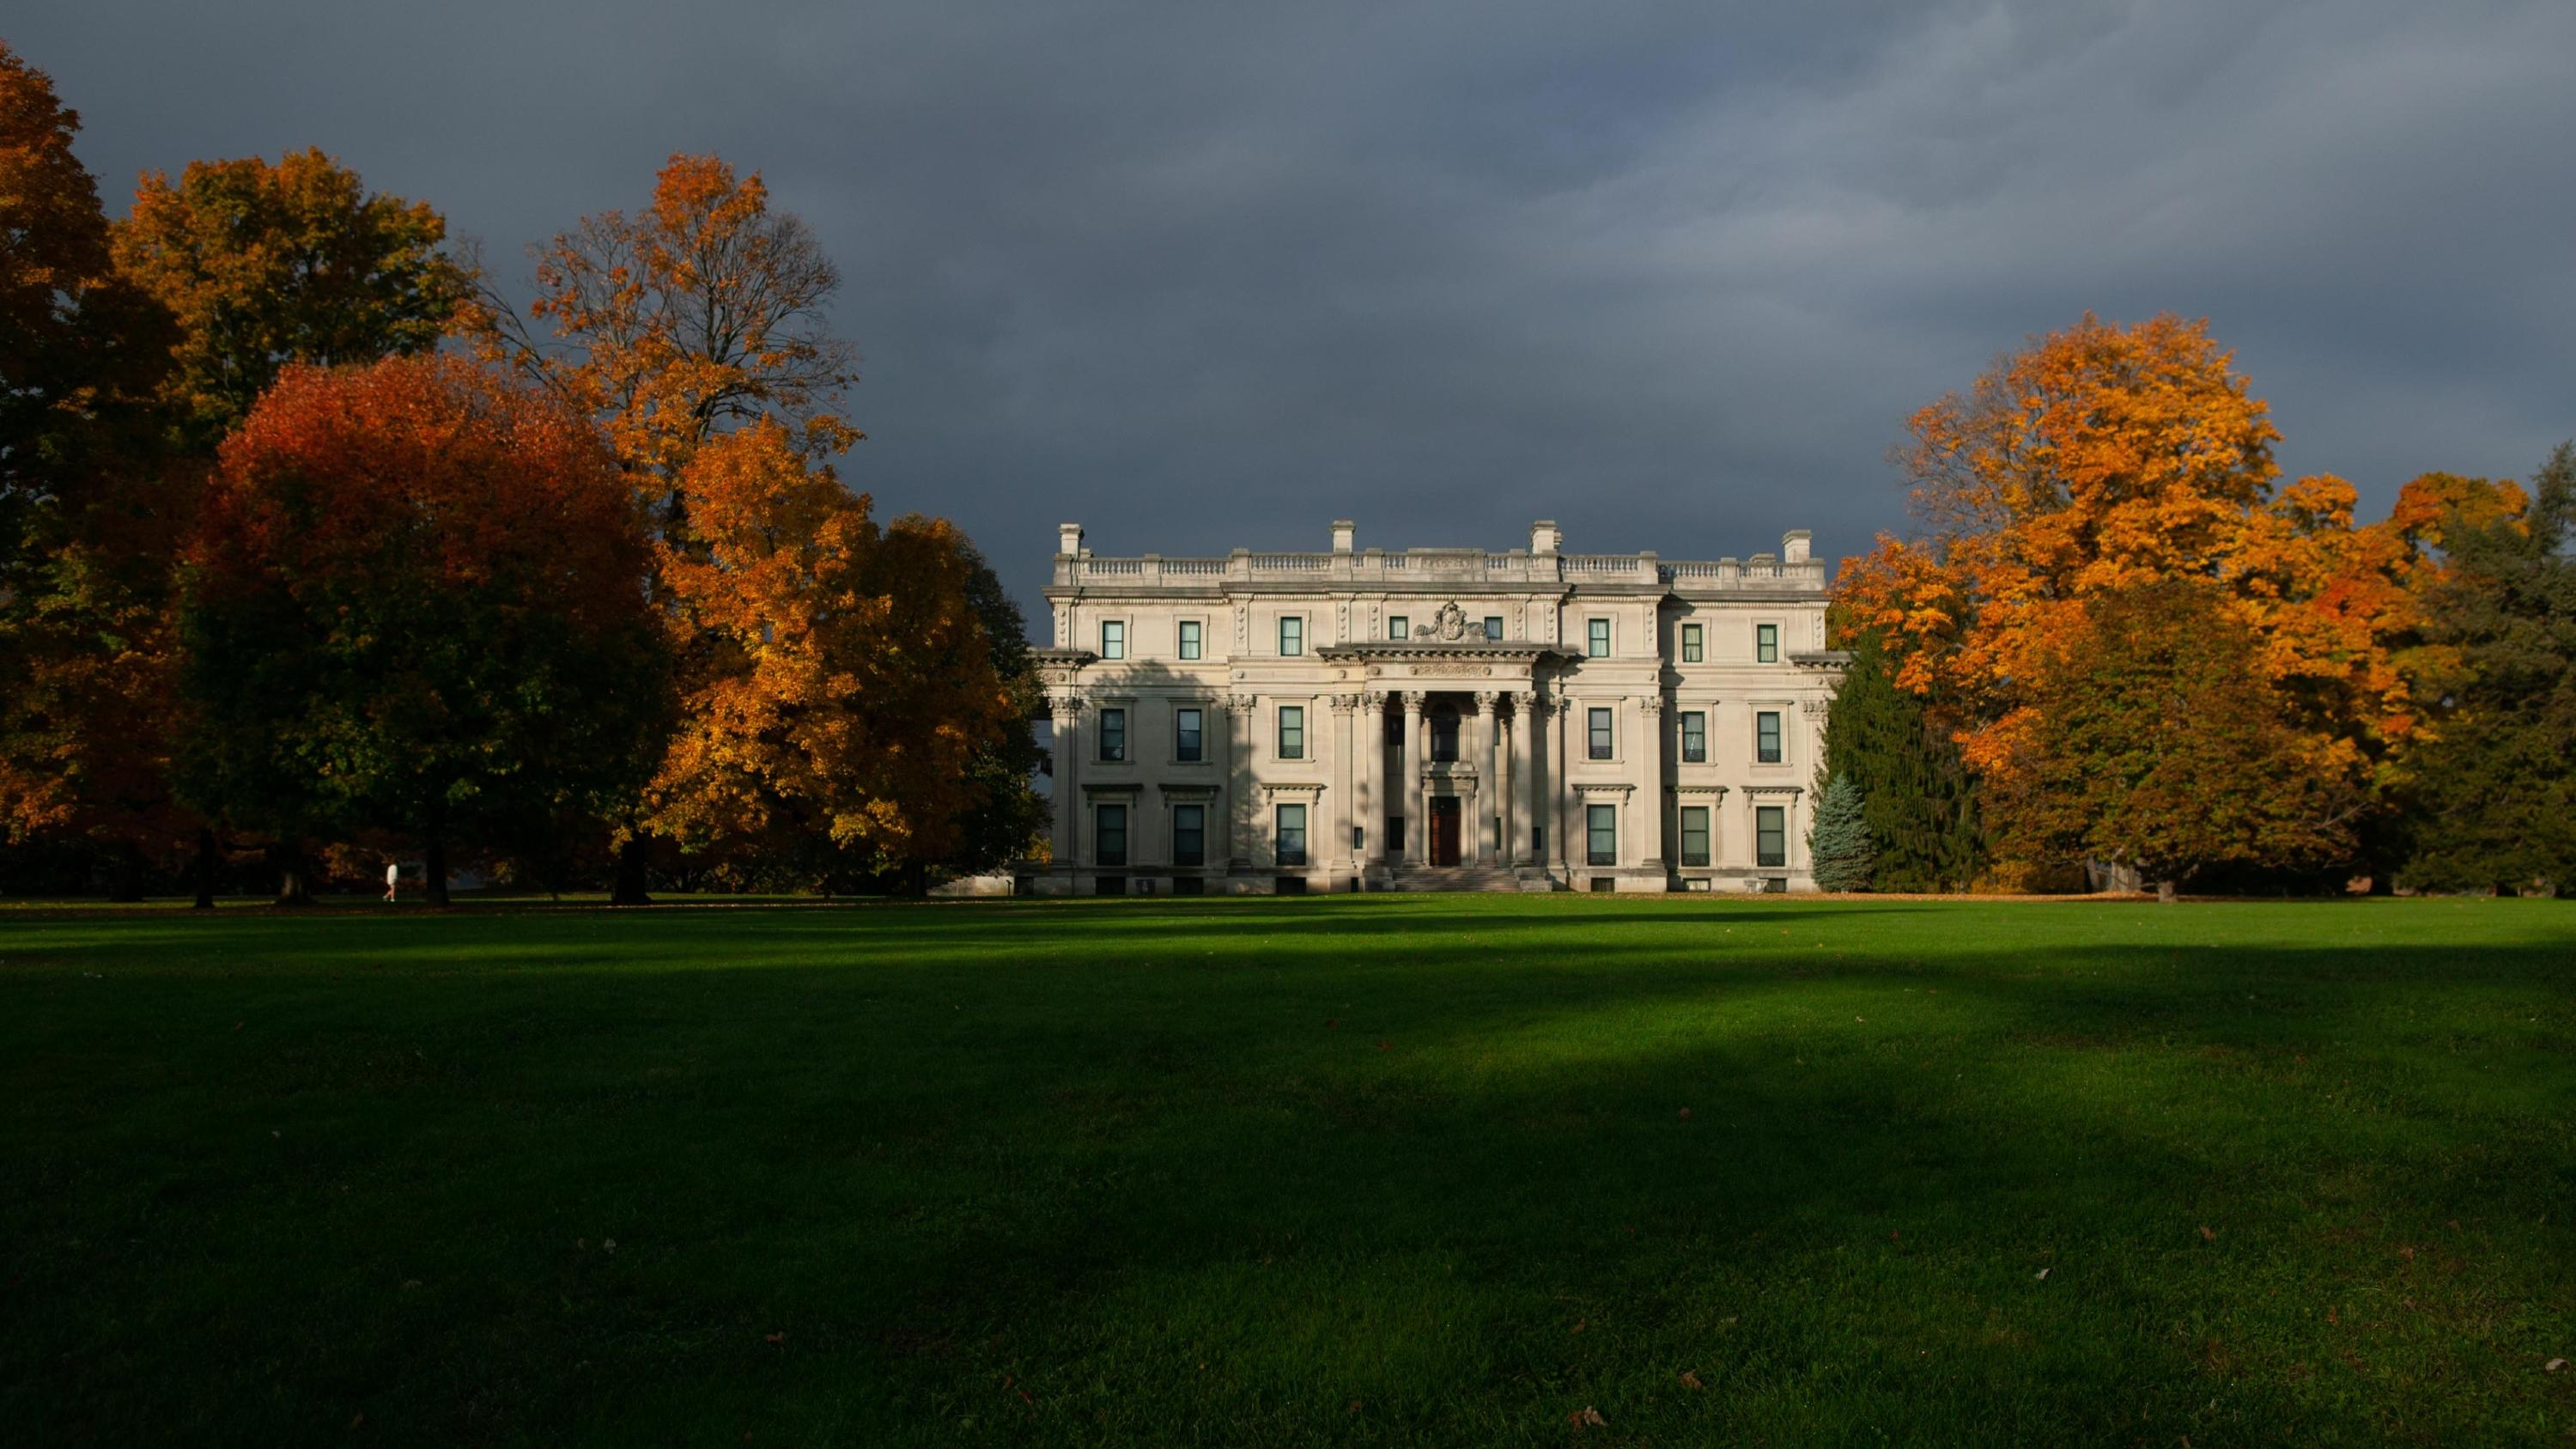 The Vanderbilt Mansion in the Fall